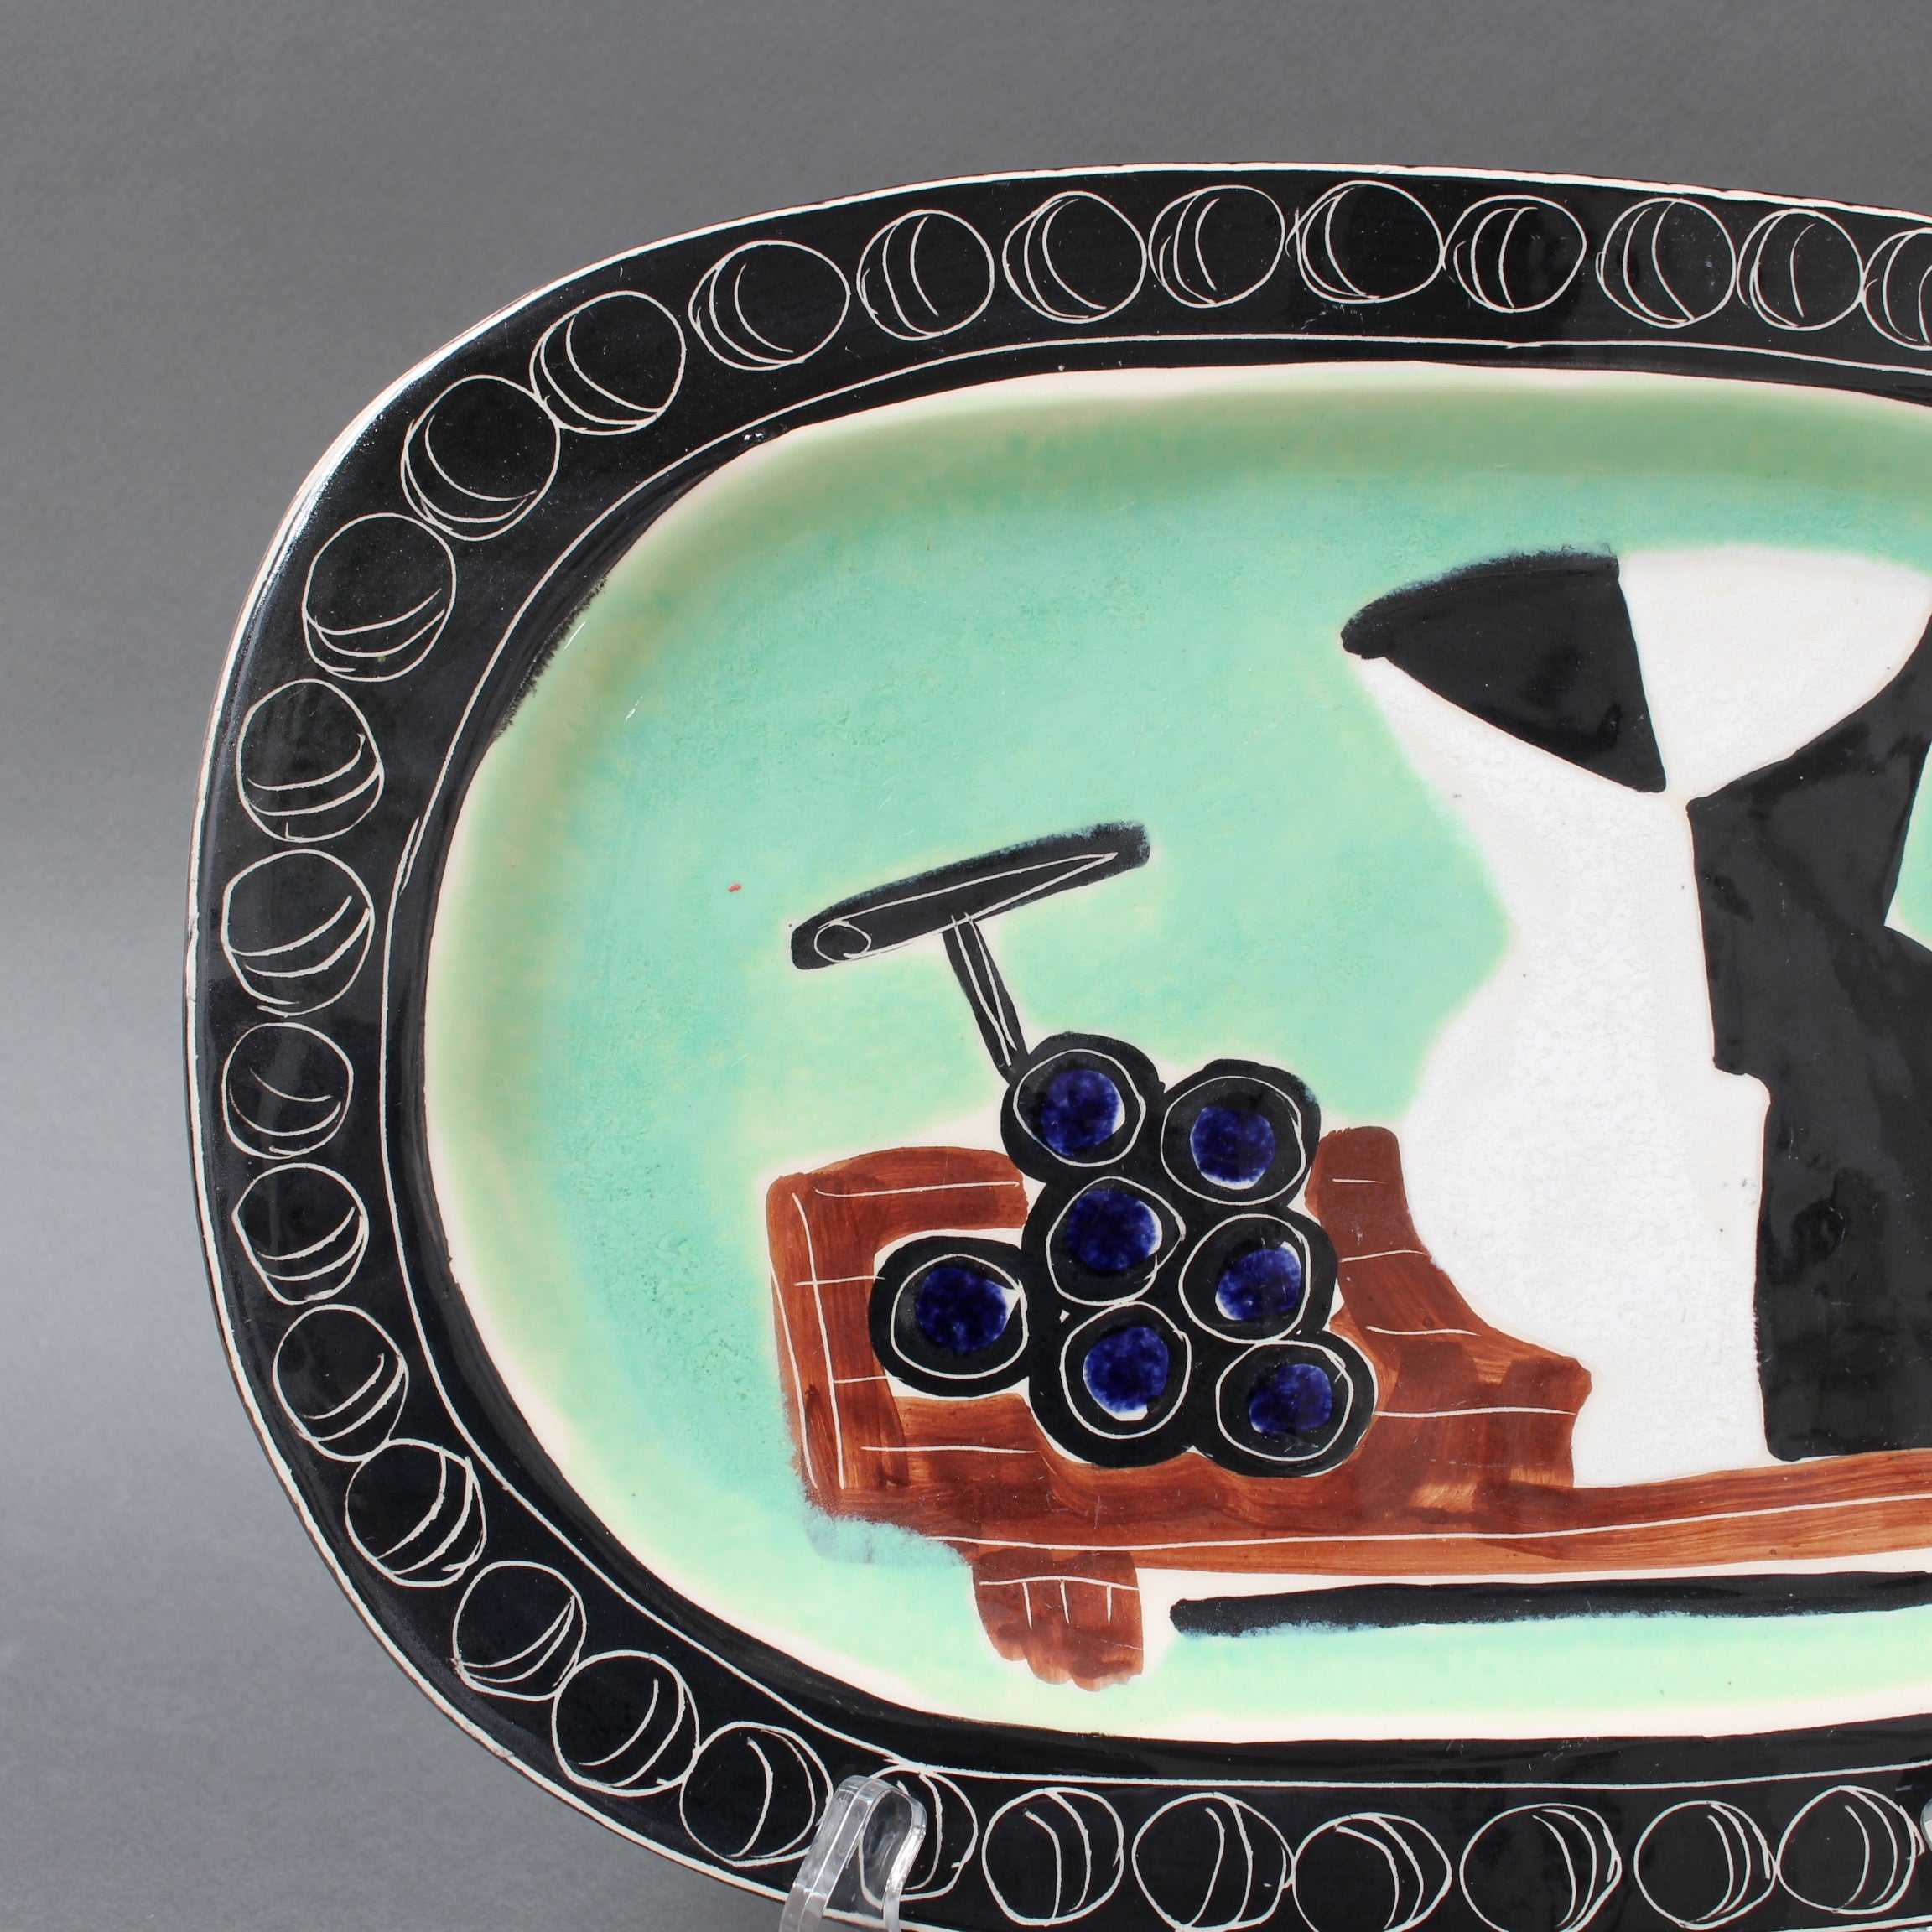 Poet-Laval Decorative Ceramic Platter by Jacques Pouchain (Circa 1950s)